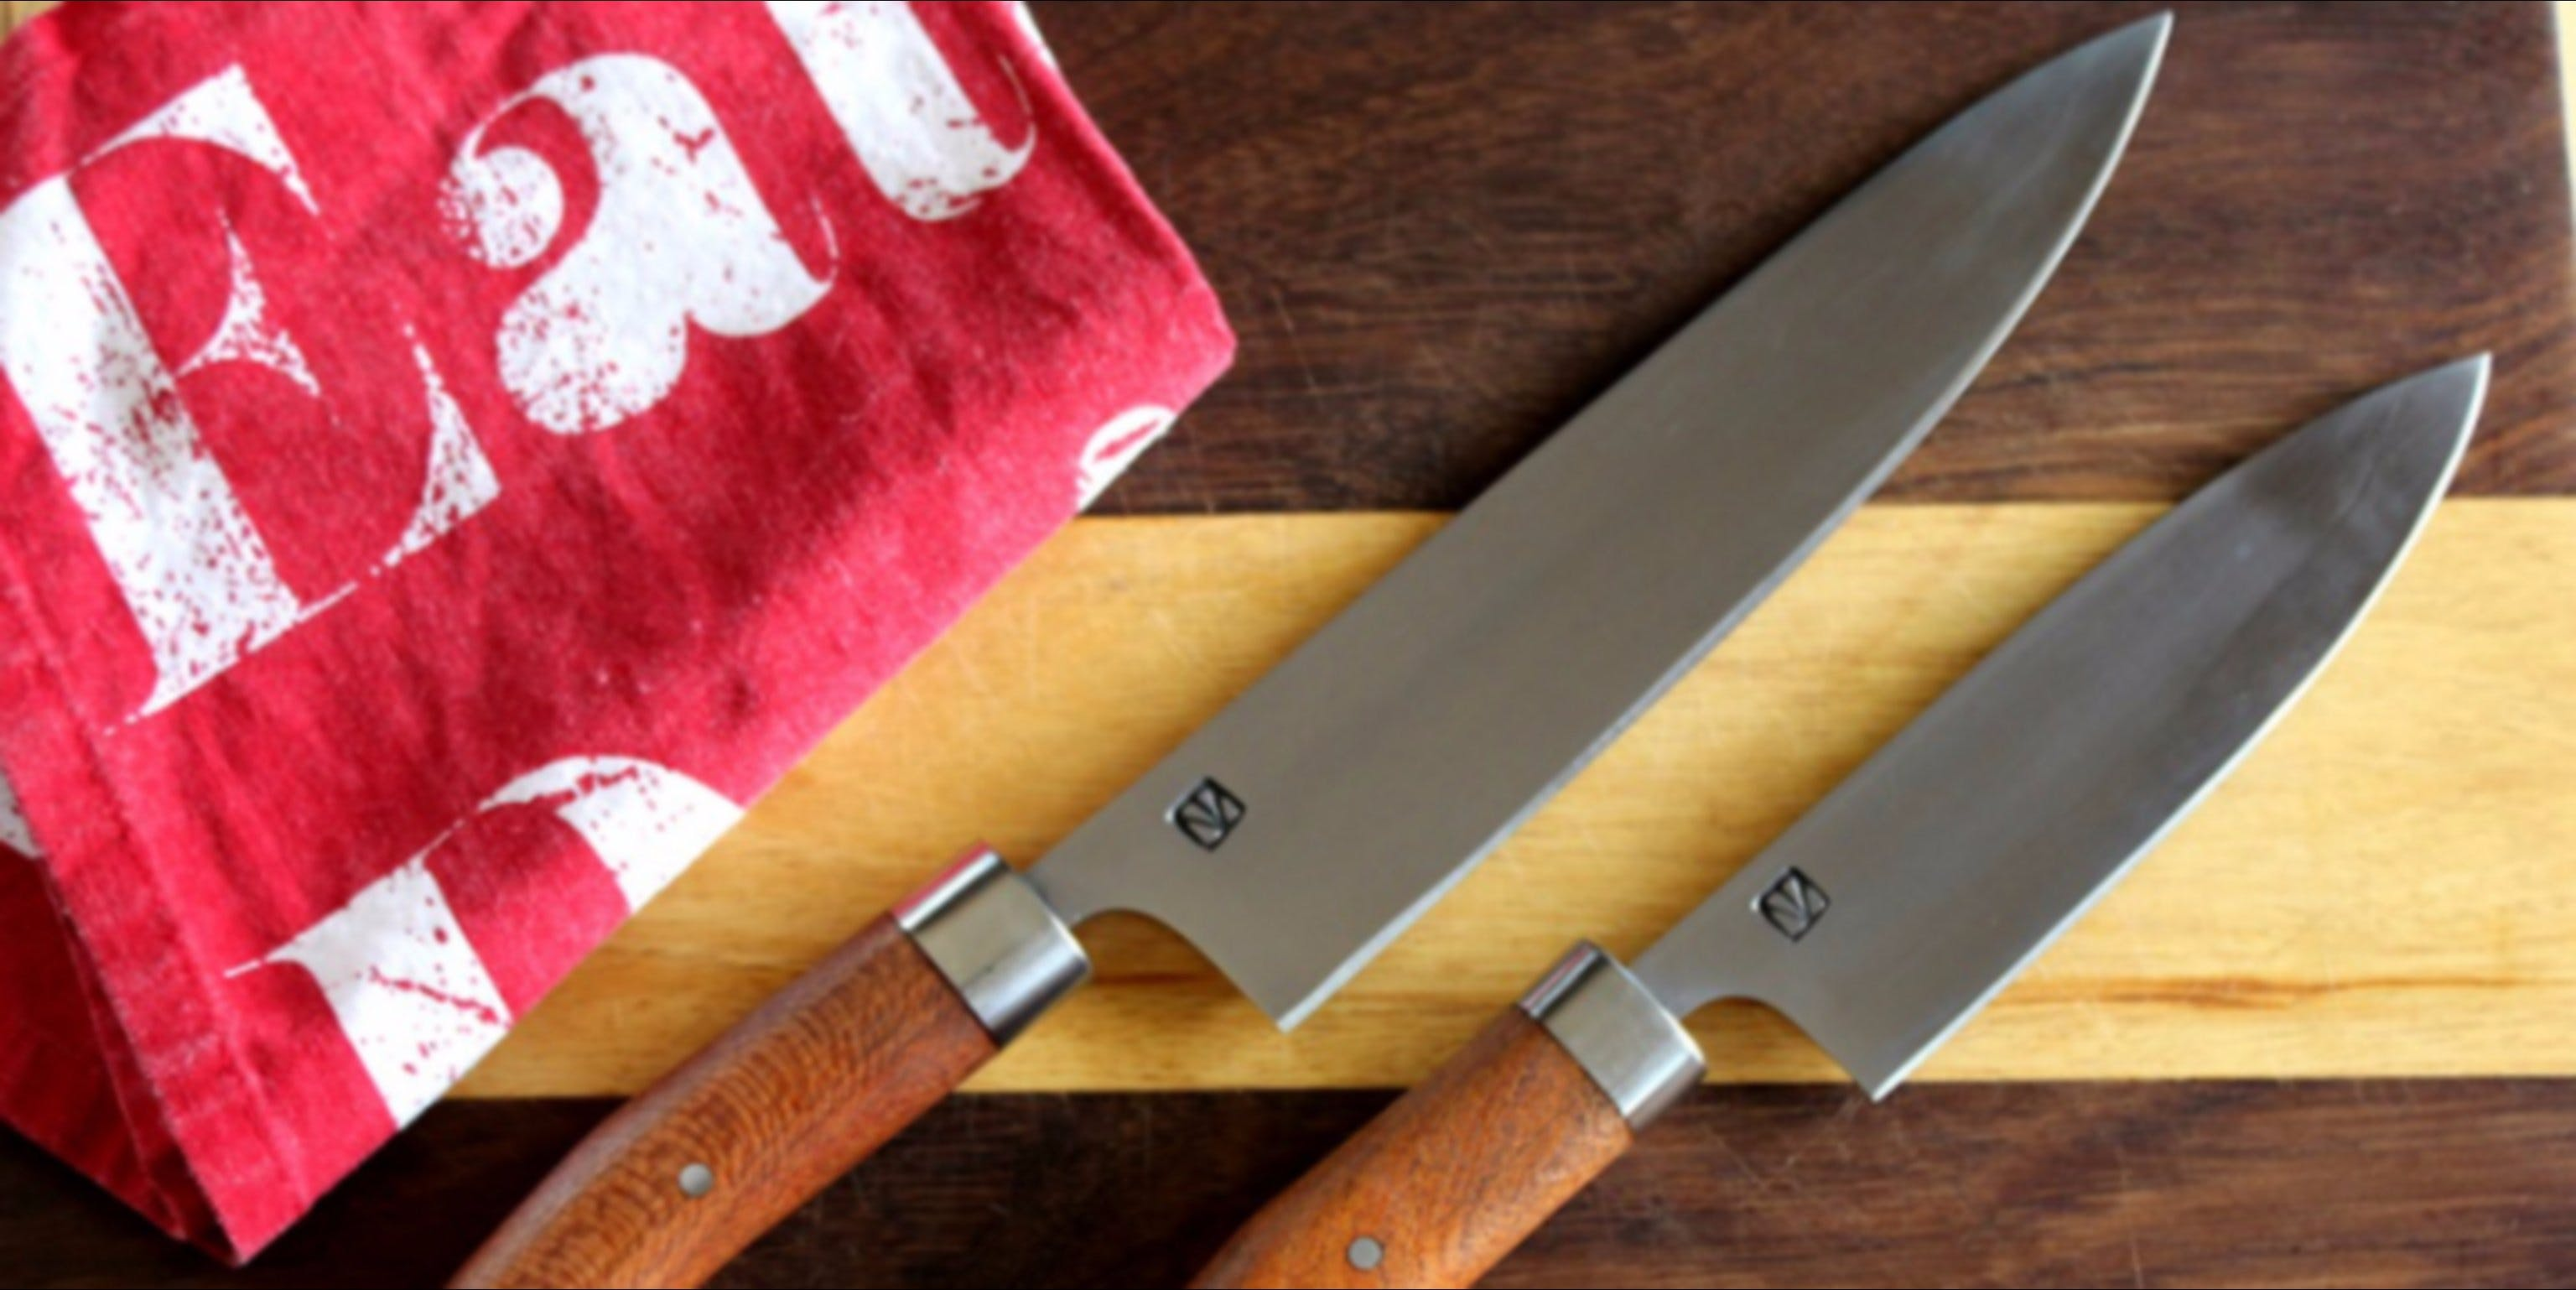 South Coast Knife Show and Rare Artisan Expo - Accommodation in Surfers Paradise